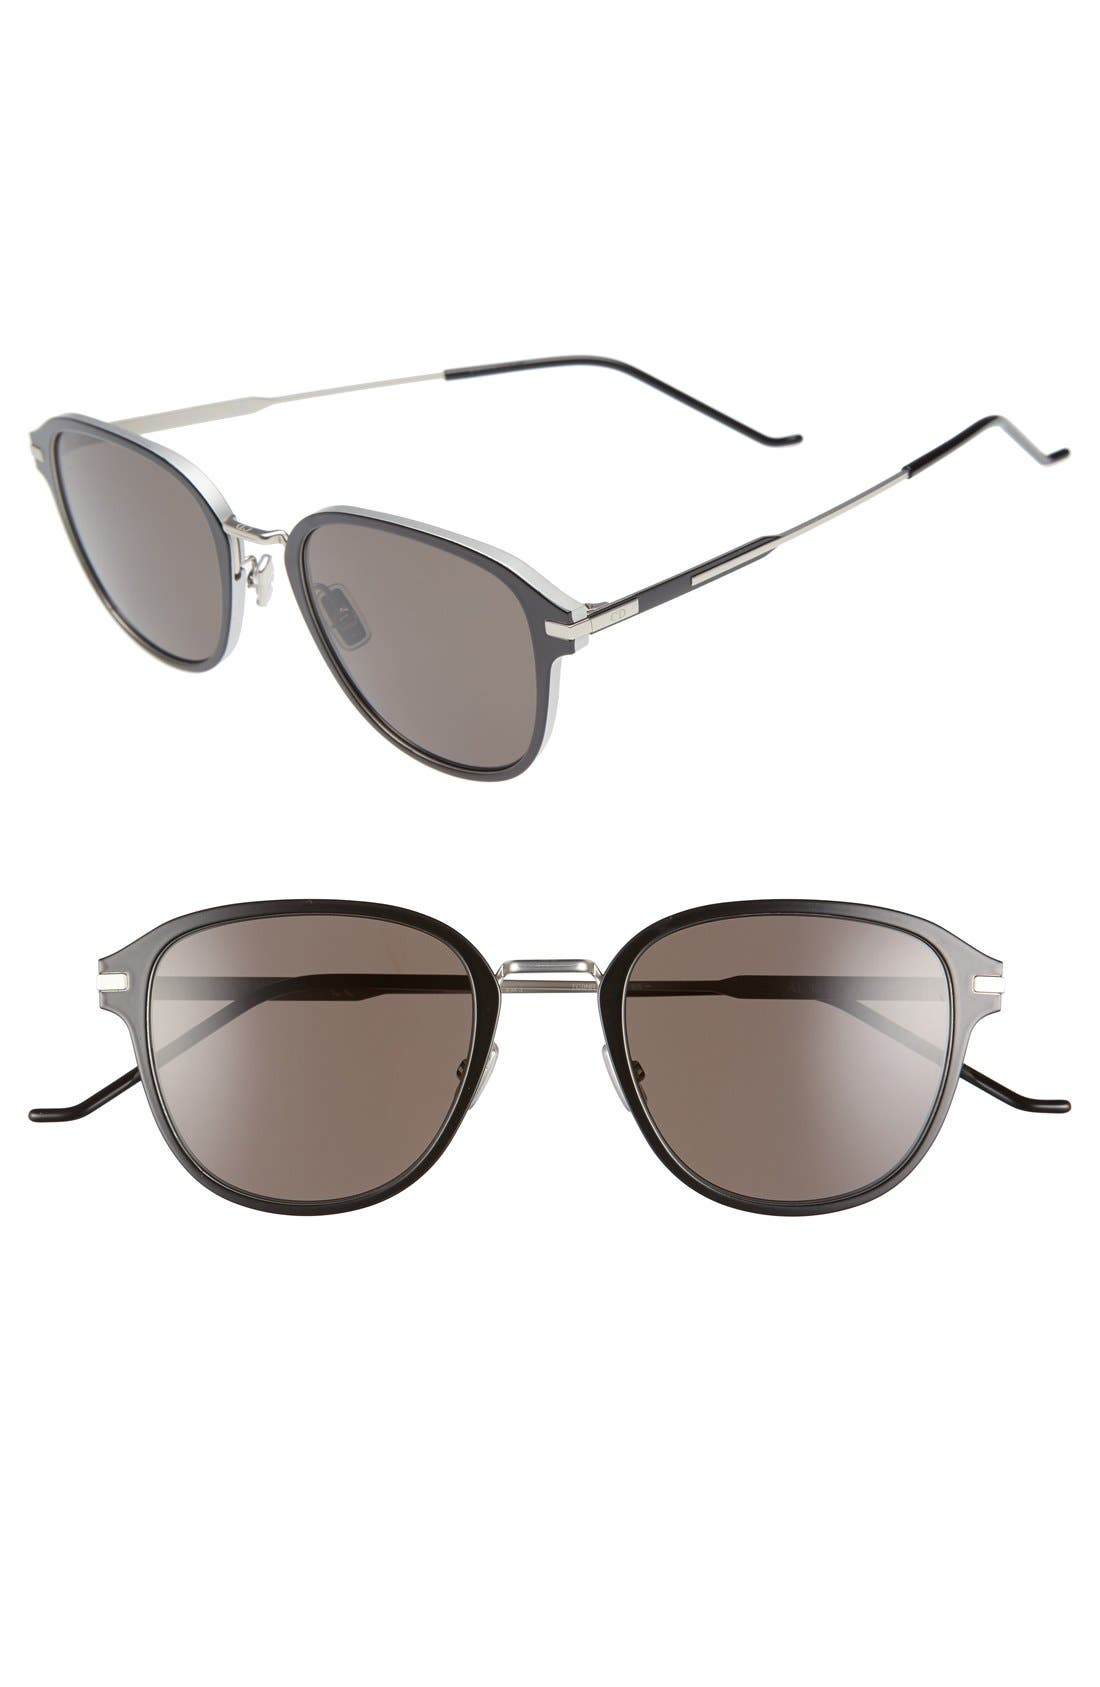 55mm Wire Sunglasses,                         Main,                         color, Metallic Silver/ Black